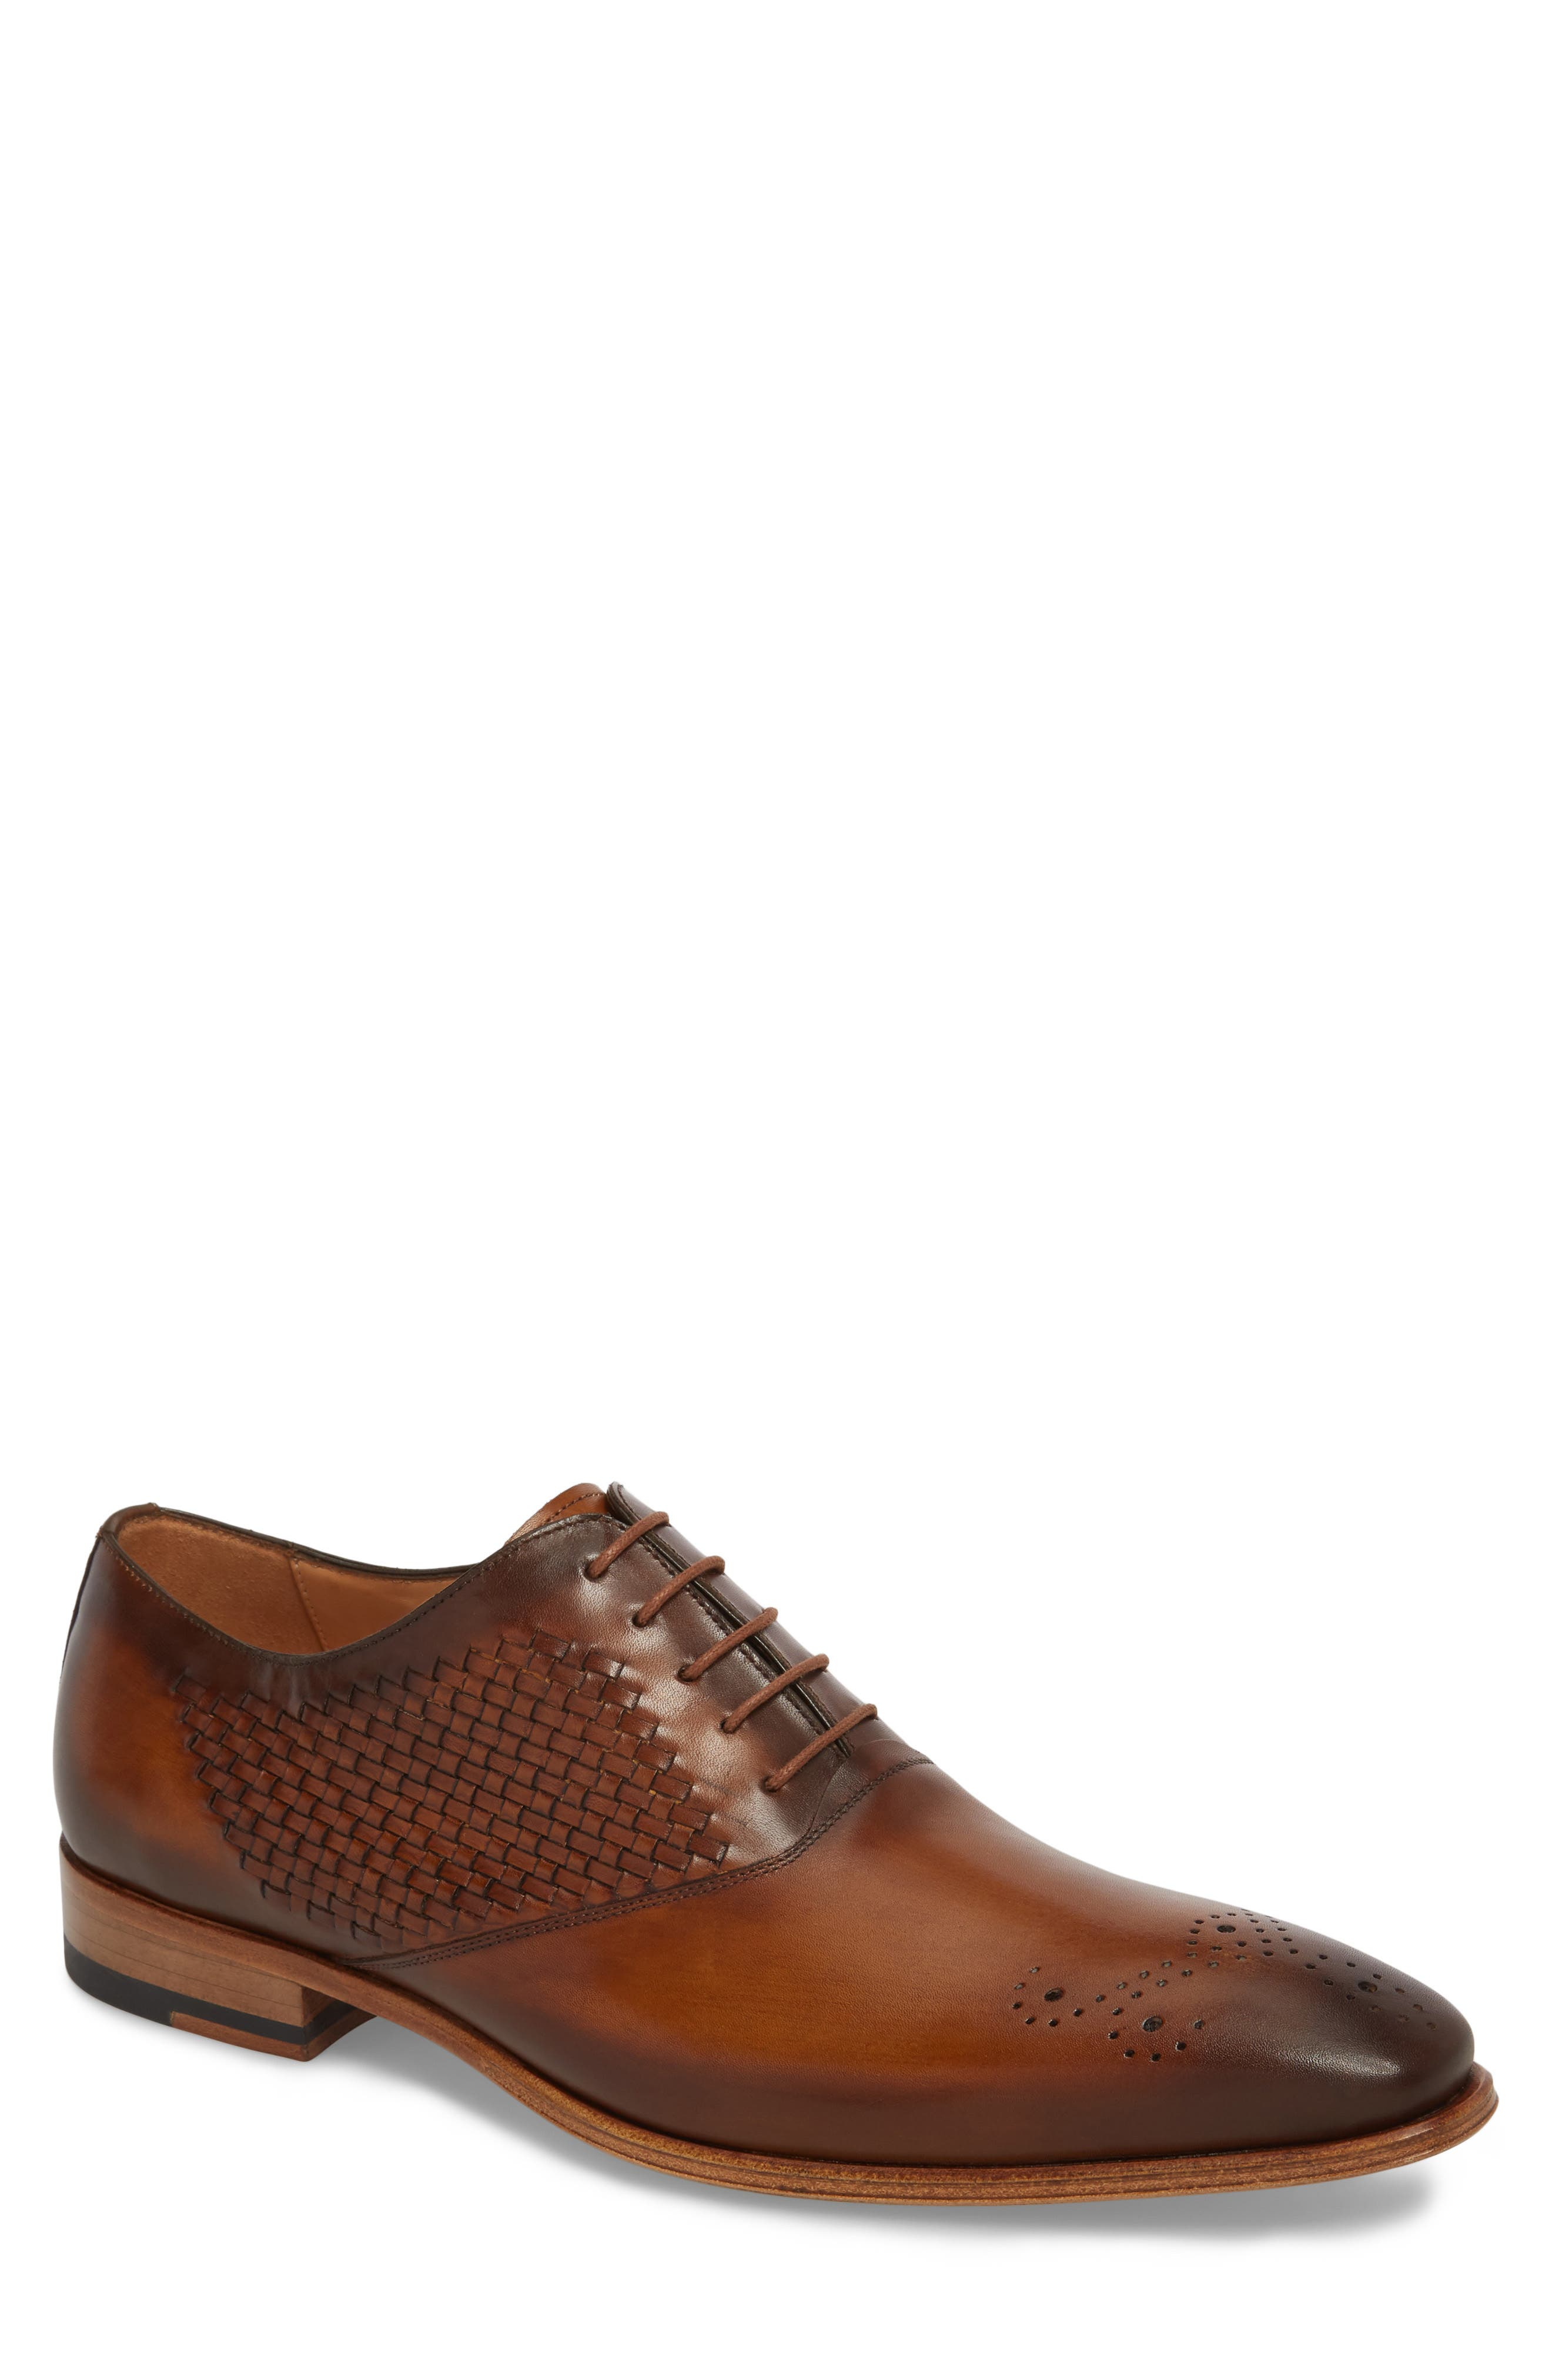 Juventa Woven Oxford,                             Main thumbnail 1, color,                             HONEY LEATHER